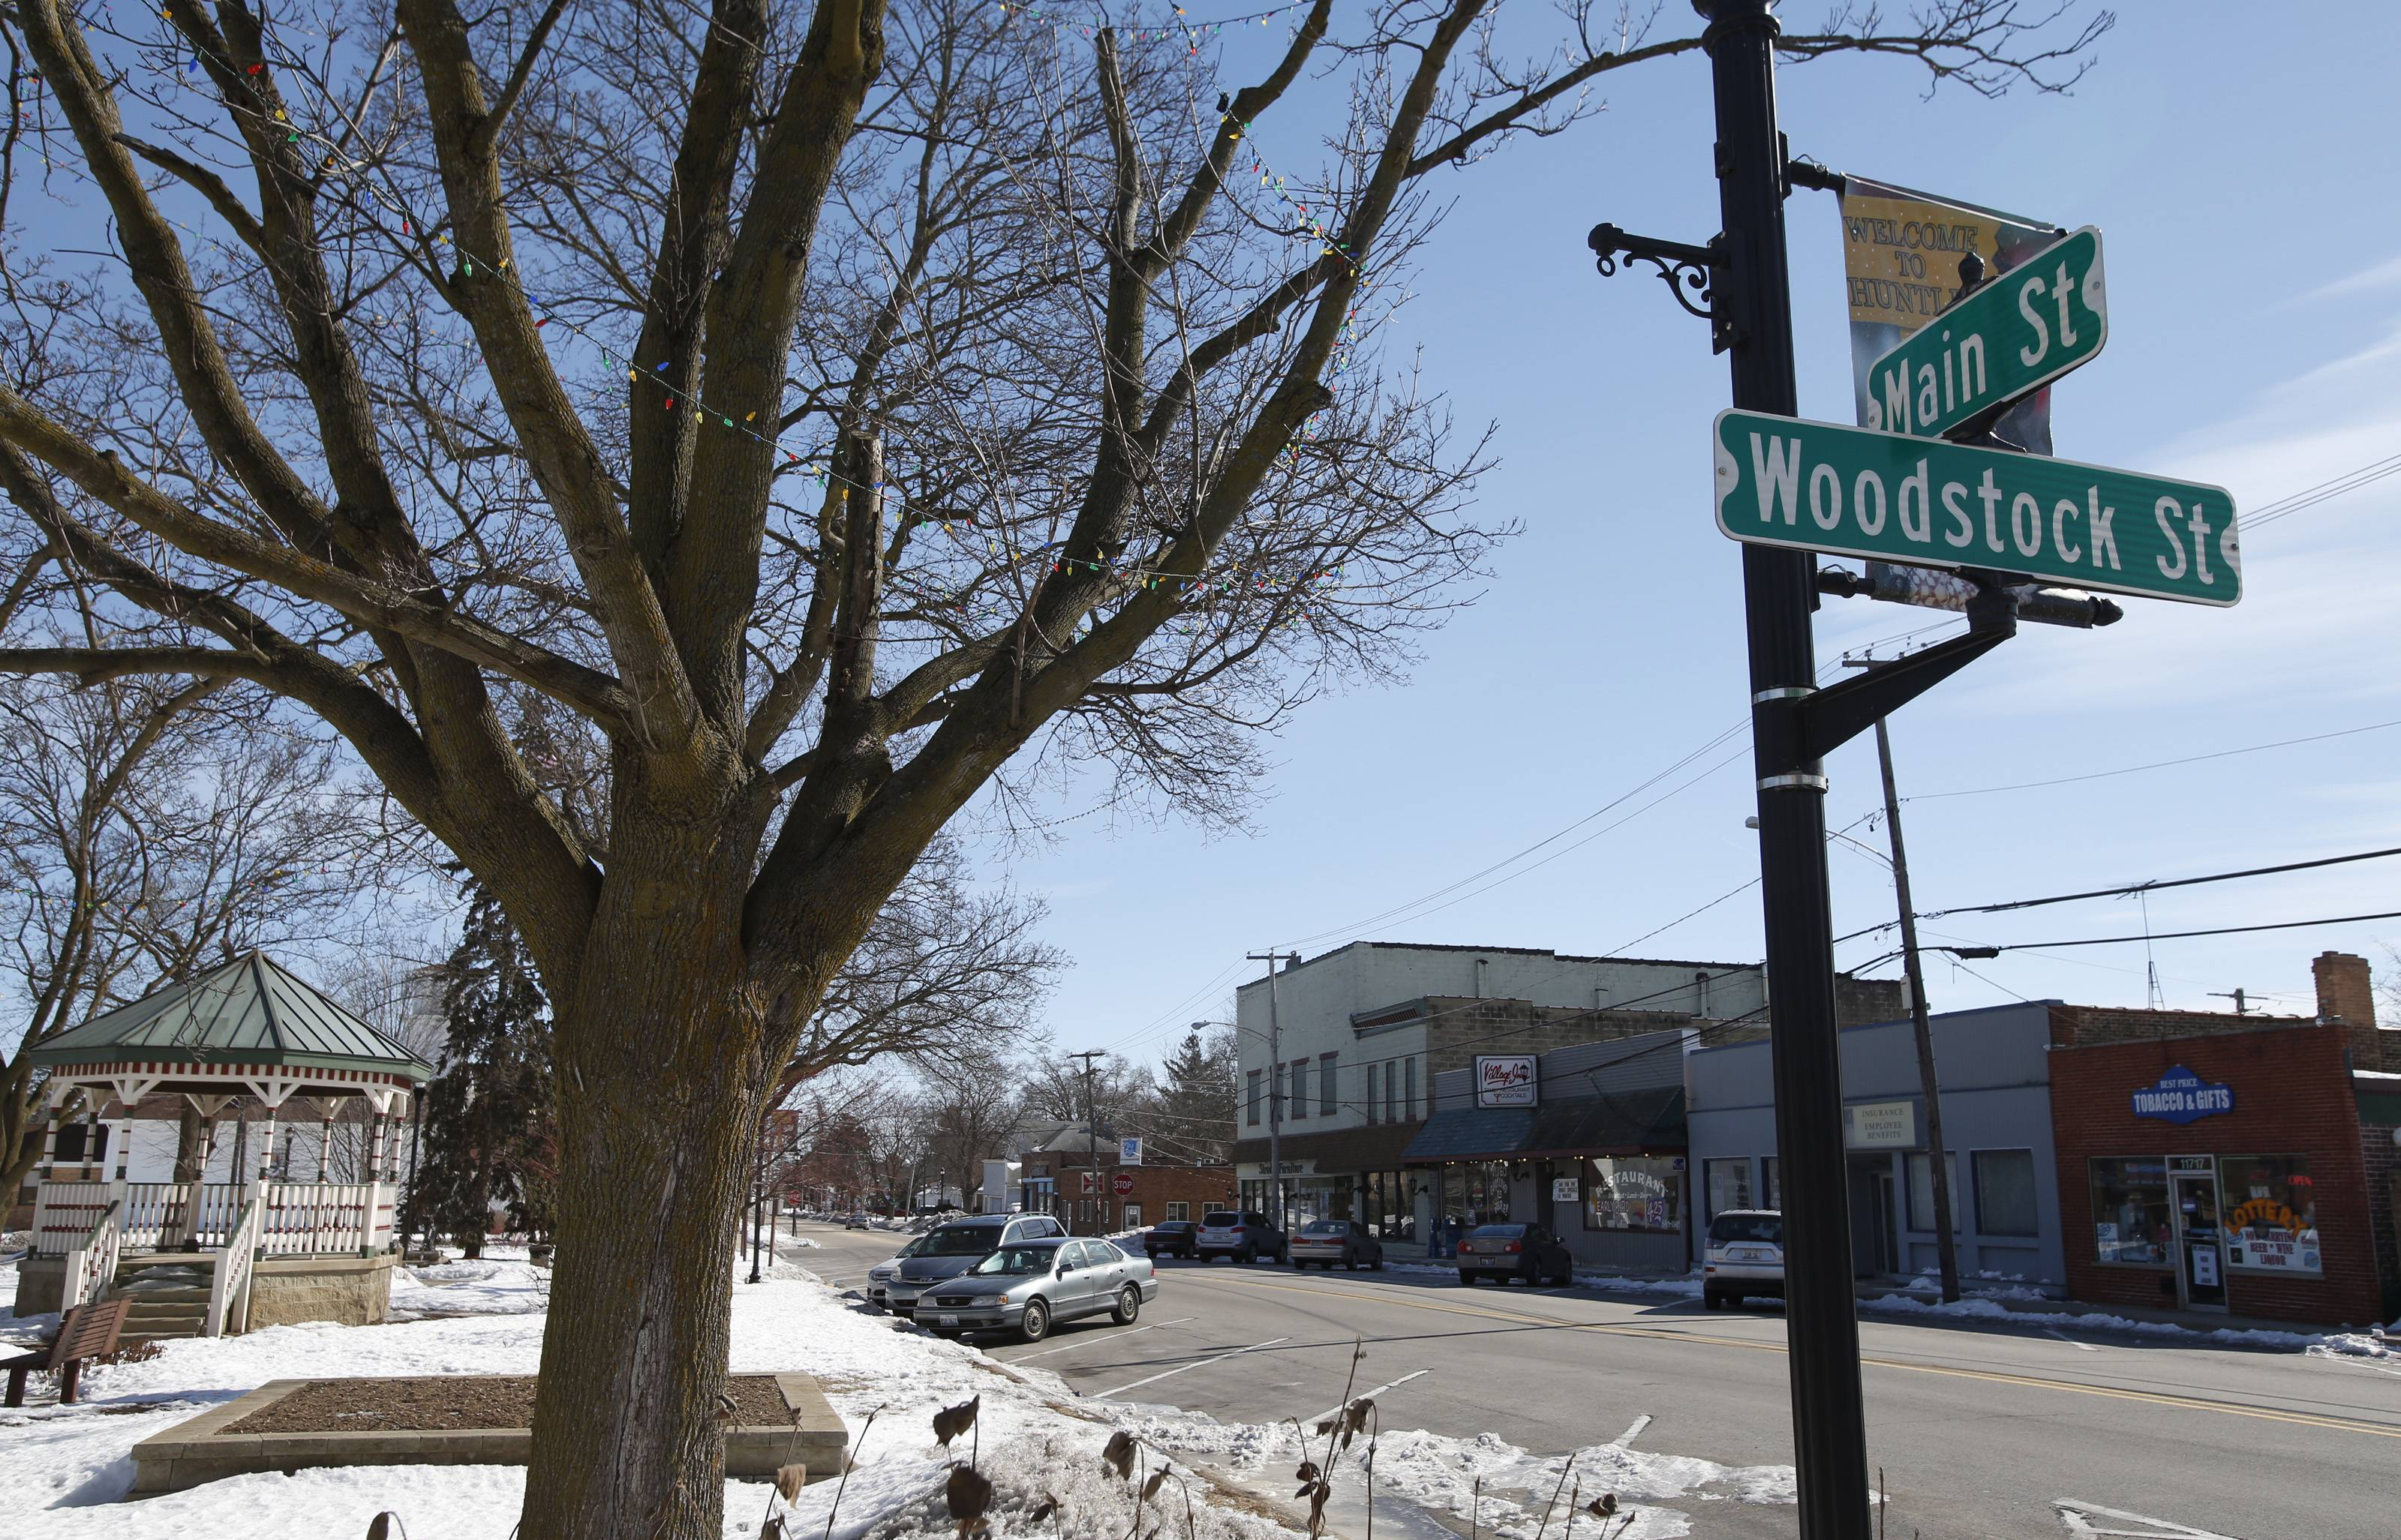 Despite the expansion of Route 47 and growth on the north and south ends of the village, Huntley's downtown retains its charm and local flavor. The village ranked No. 1 on a website's list of best places for homeownership in Illinois.